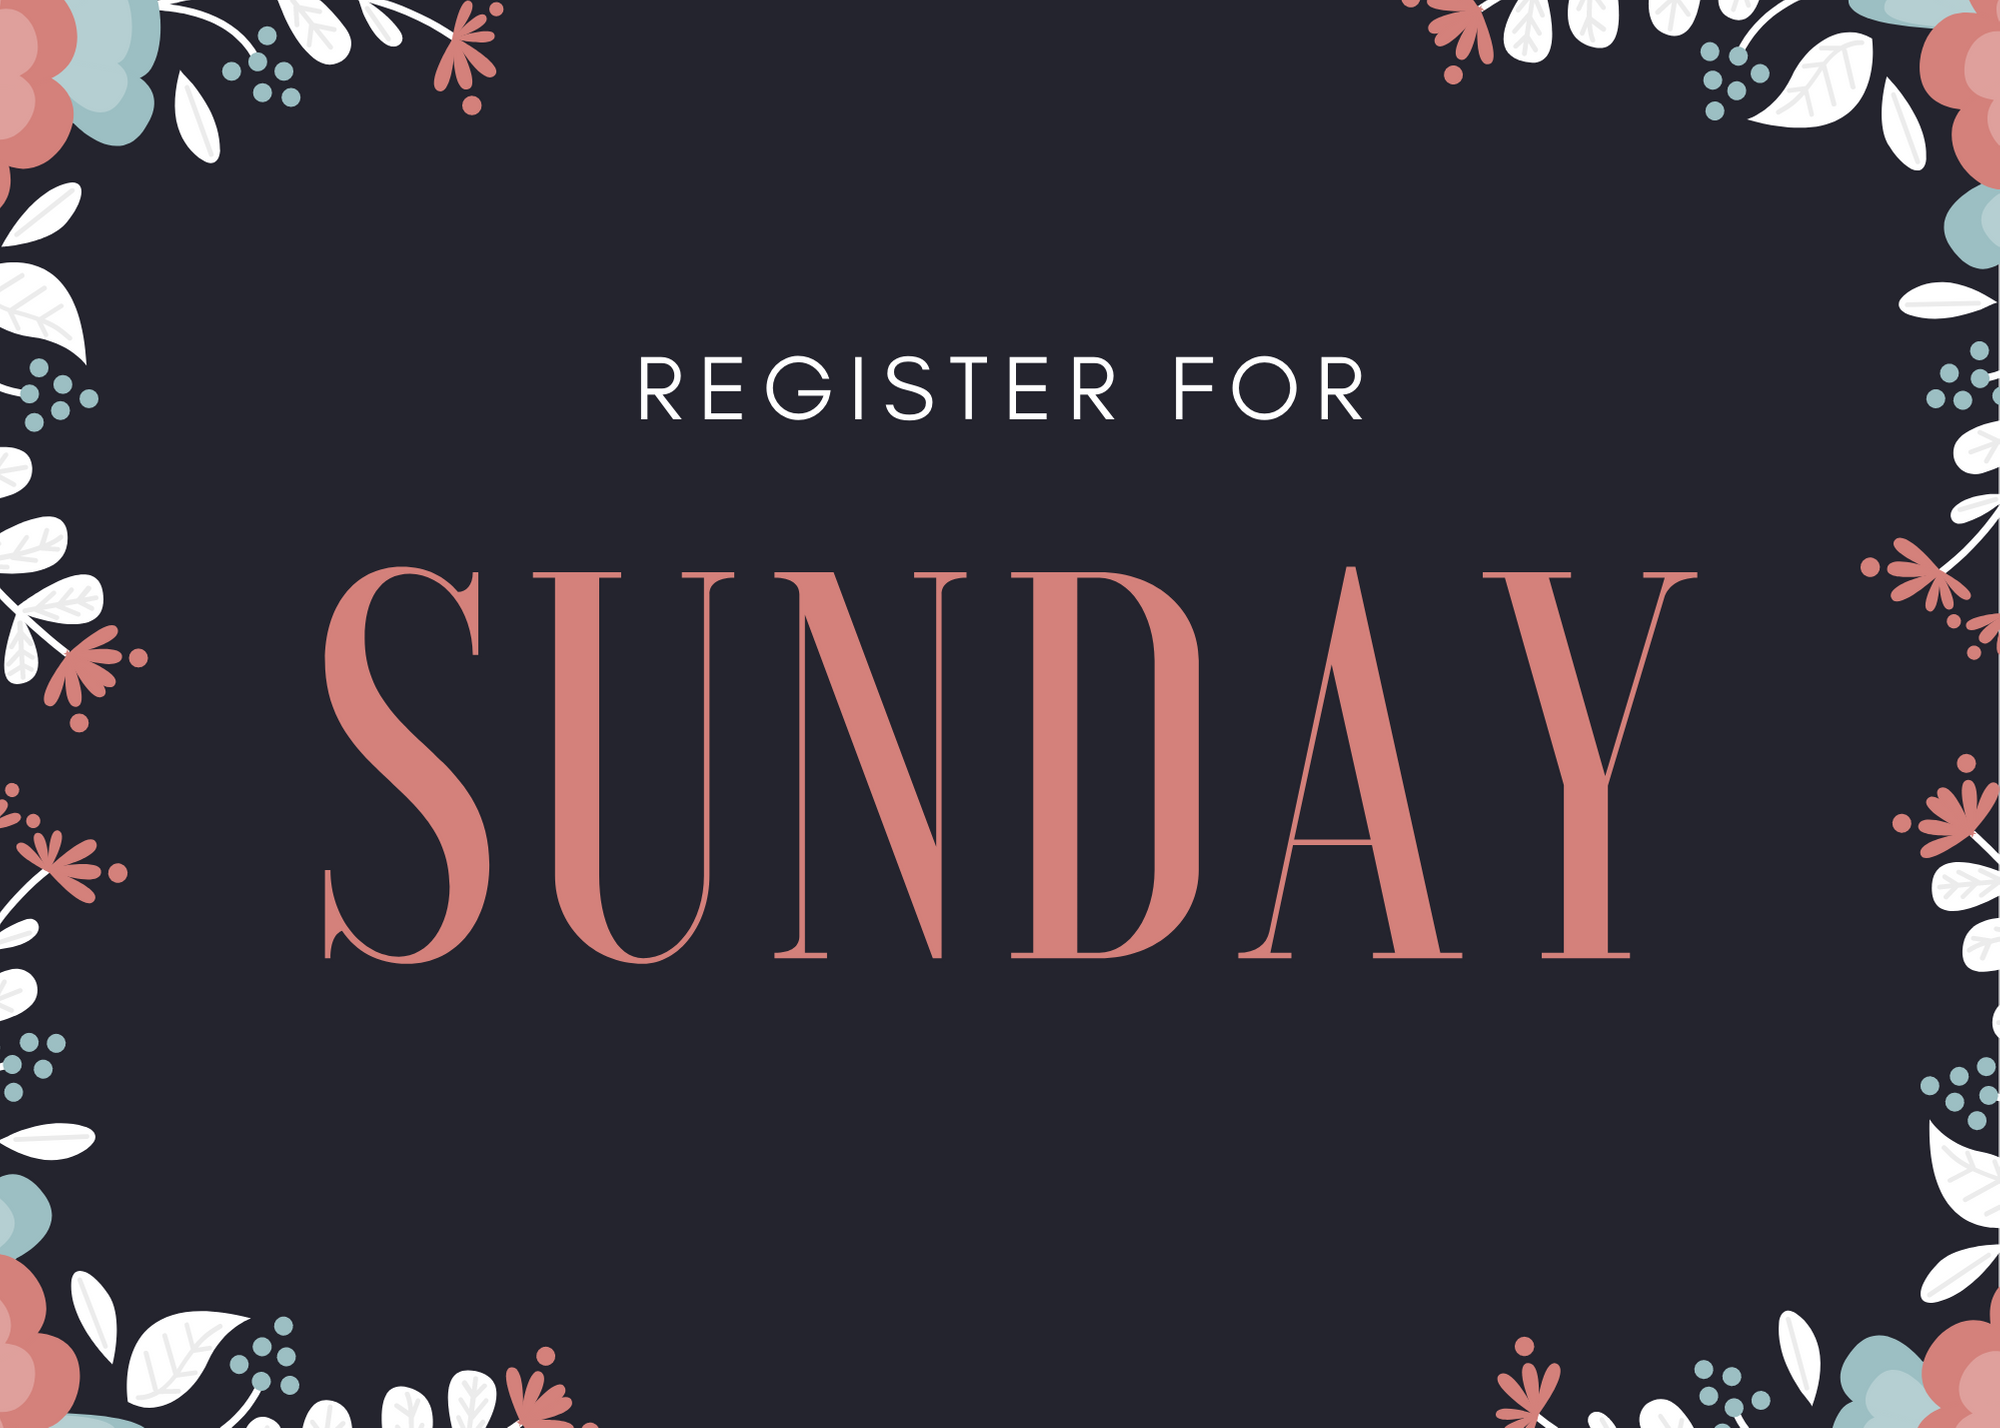 Sunday Registration